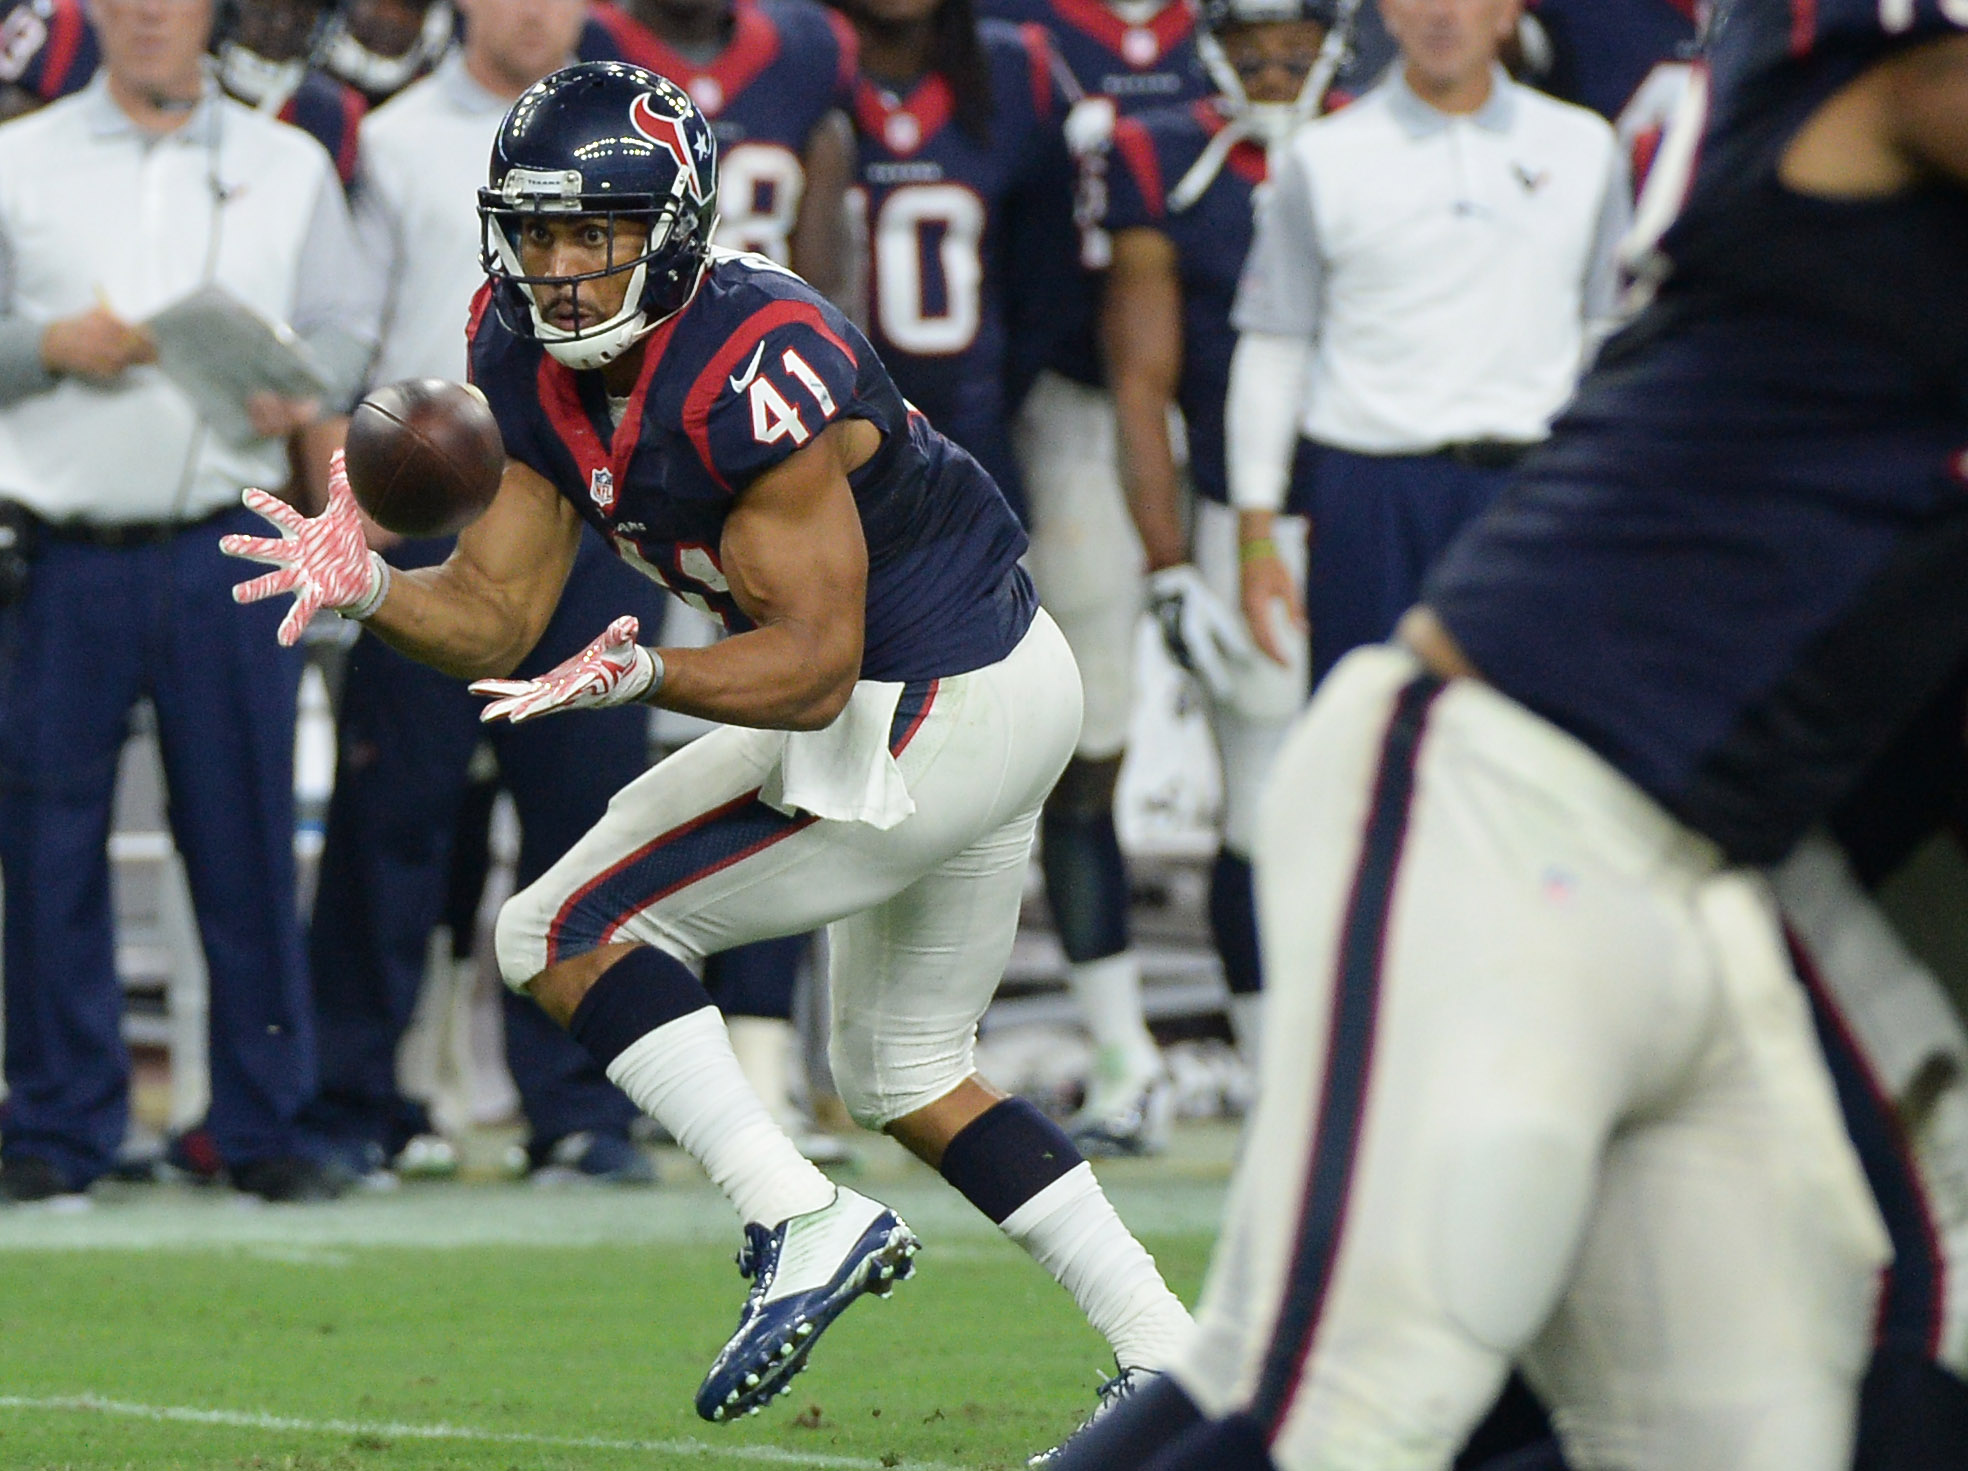 FILE - In this Aug. 22, 2015, file photo, Houston Texans' Jonathan Grimes (41) makes a catch against the Denver Broncos during the first half of an NFL preseason football gamein Houston. Grimes got an NFL pink slip four times before finally hanging on wit